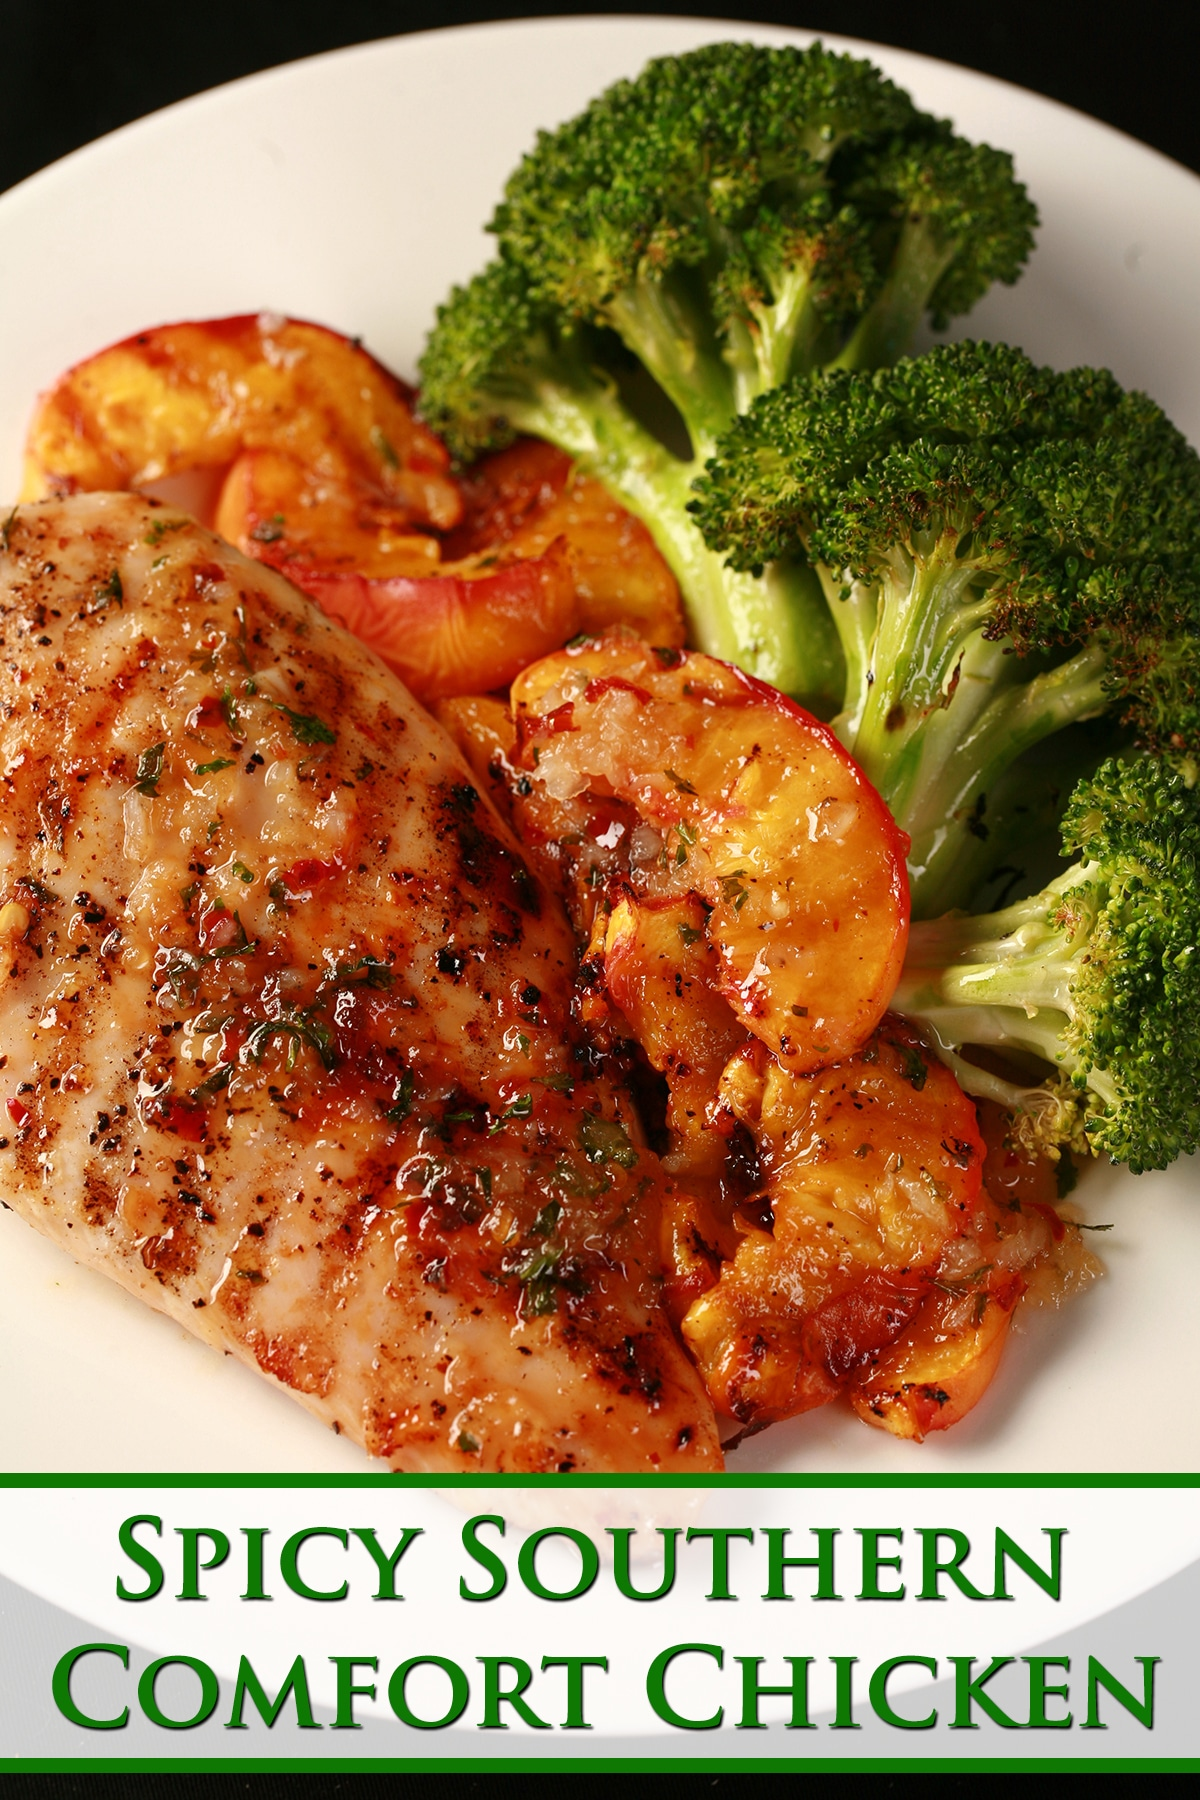 Image of a plate of food: 1 grilled Southern Comfort glazed chicken breast - visibly seasoned - grilled peach slices, and broccoli